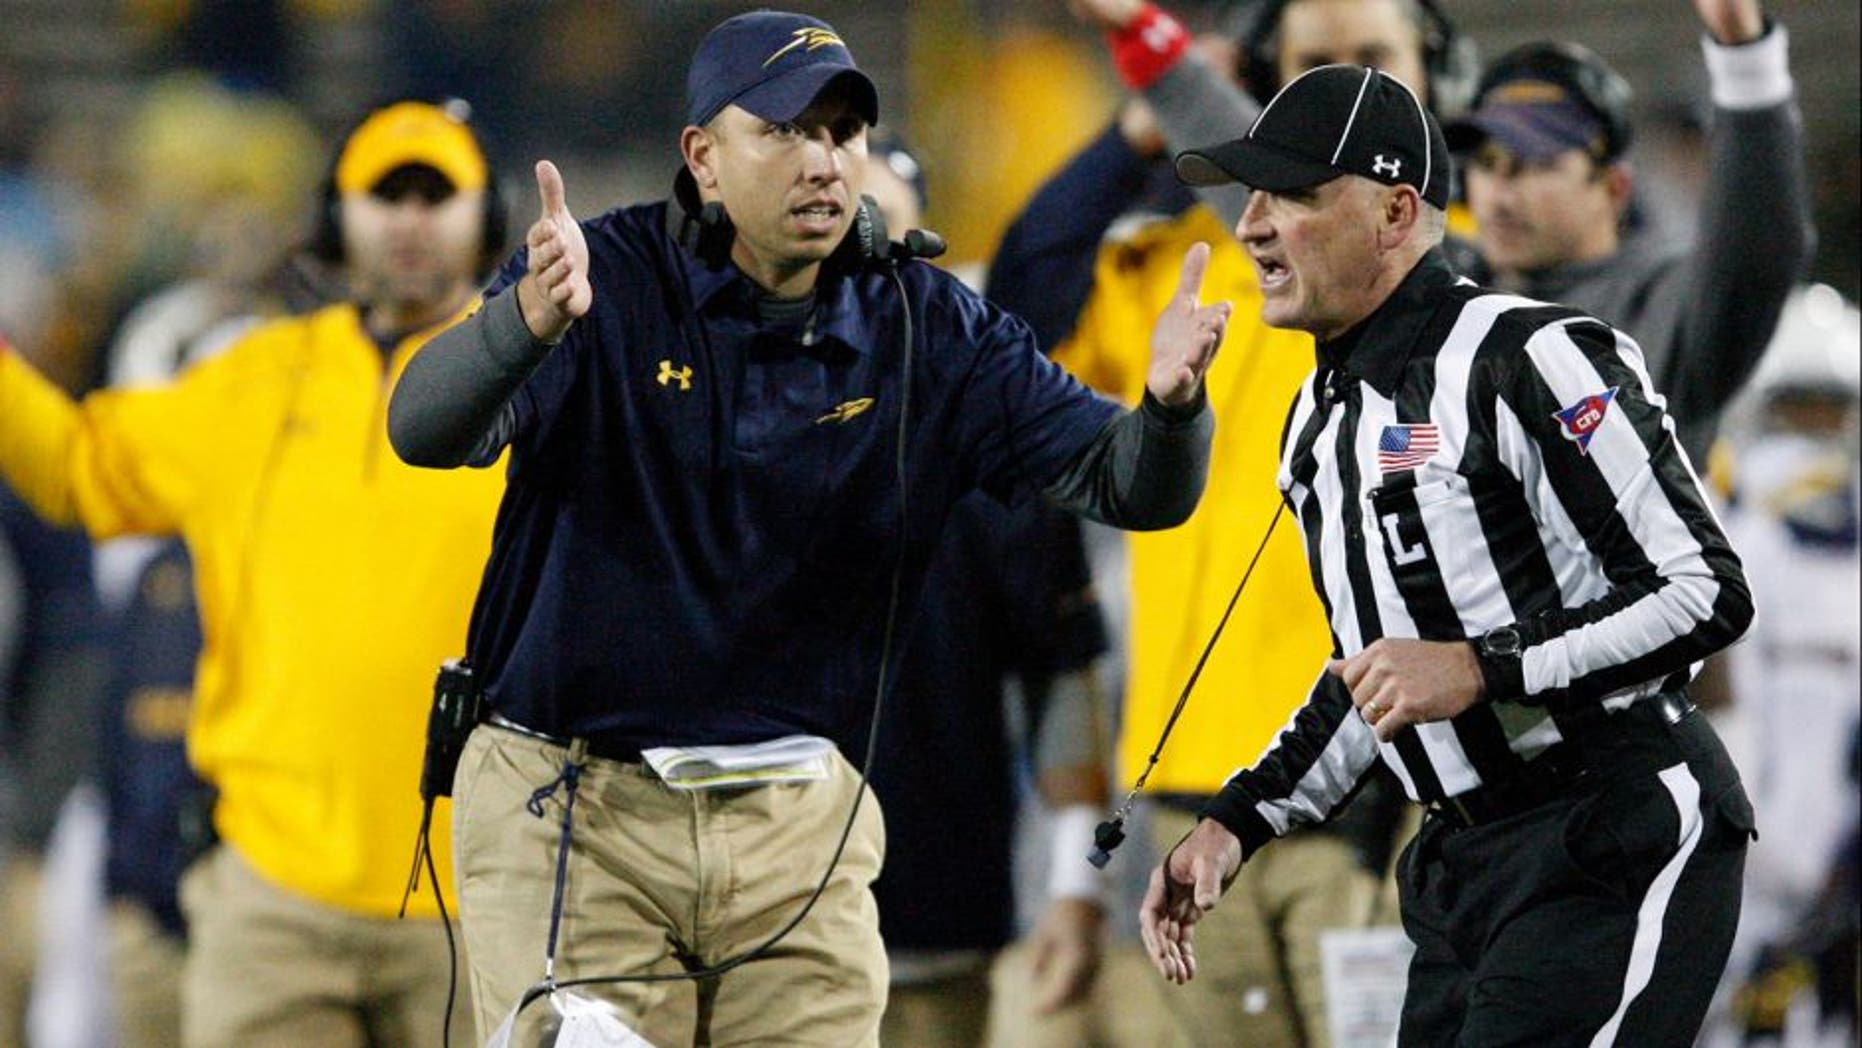 Nov 10, 2015; Mount Pleasant, MI, USA; Toledo Rockets head coach Matt Campbell looks to the ref during the fourth quarter against the Central Michigan Chippewas at Kelly/Shorts Stadium. Rockets win 28-23. Mandatory Credit: Raj Mehta-USA TODAY Sports